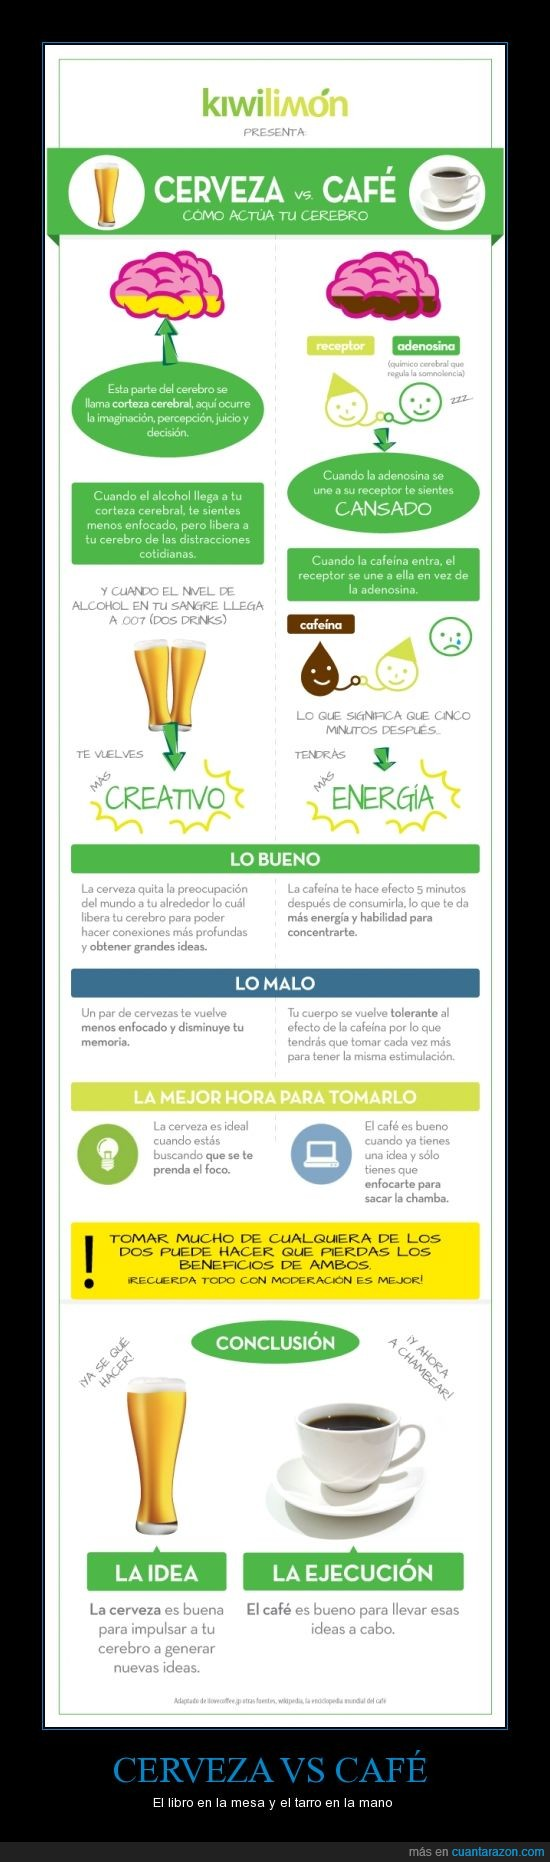 café,cerebro,cerveza,estudio,idea,vs